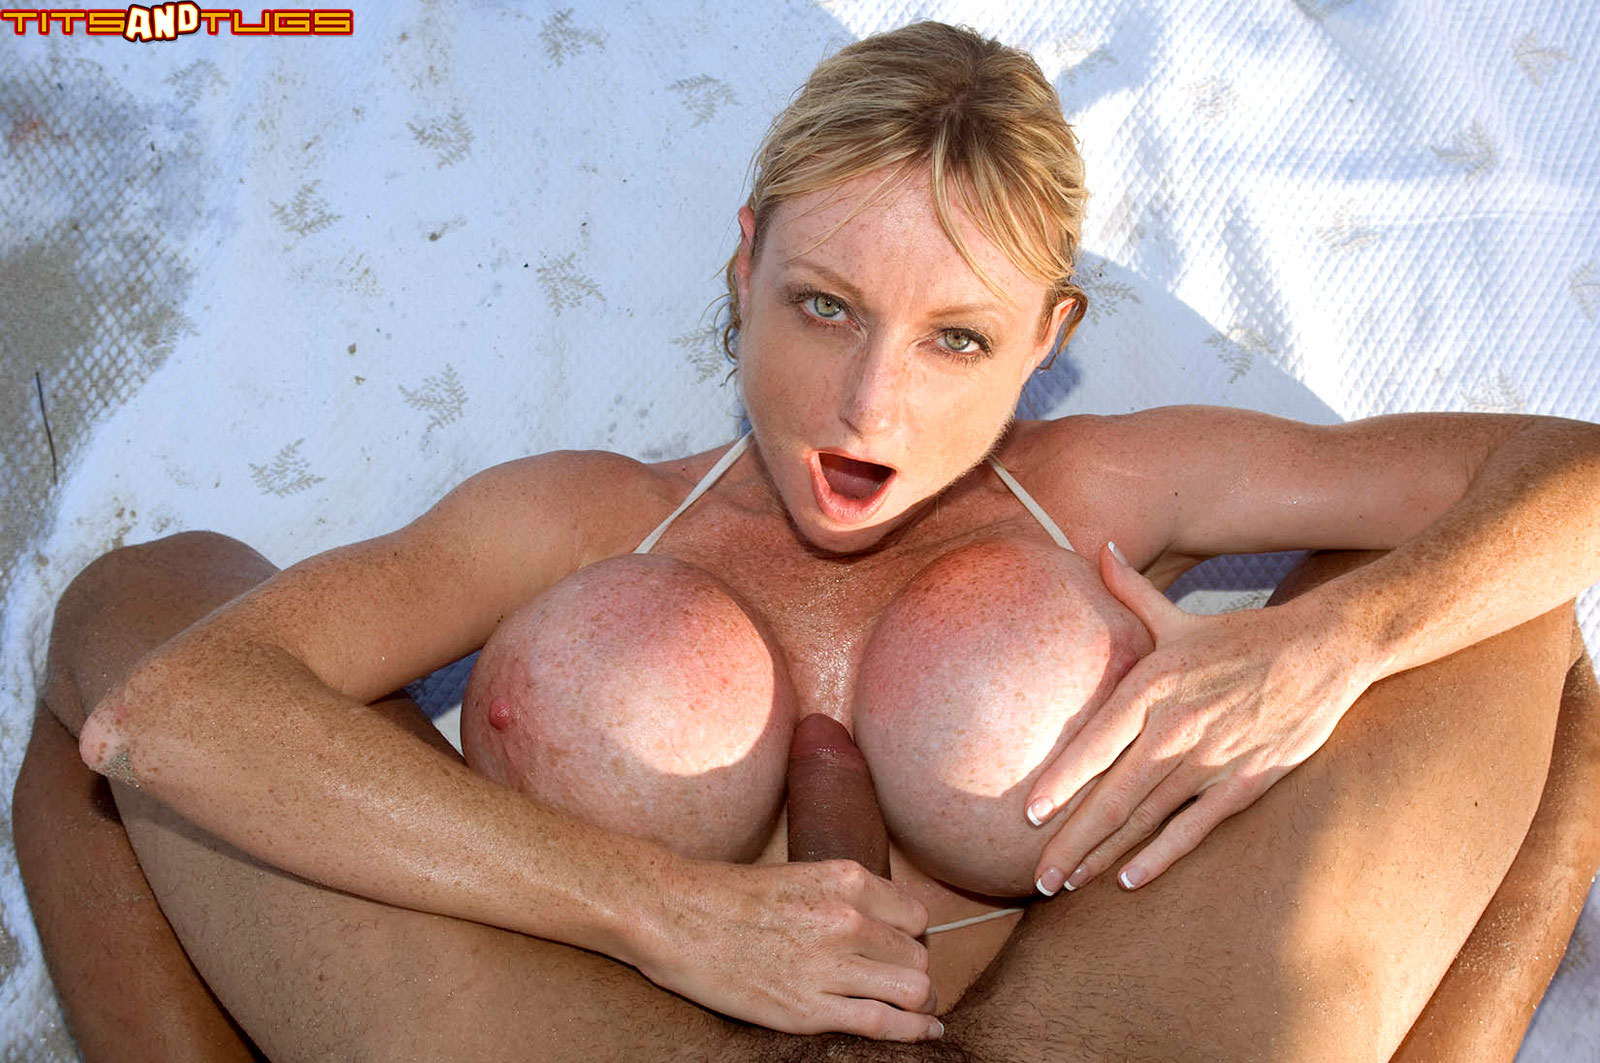 Milf tits and tugs credit Secure